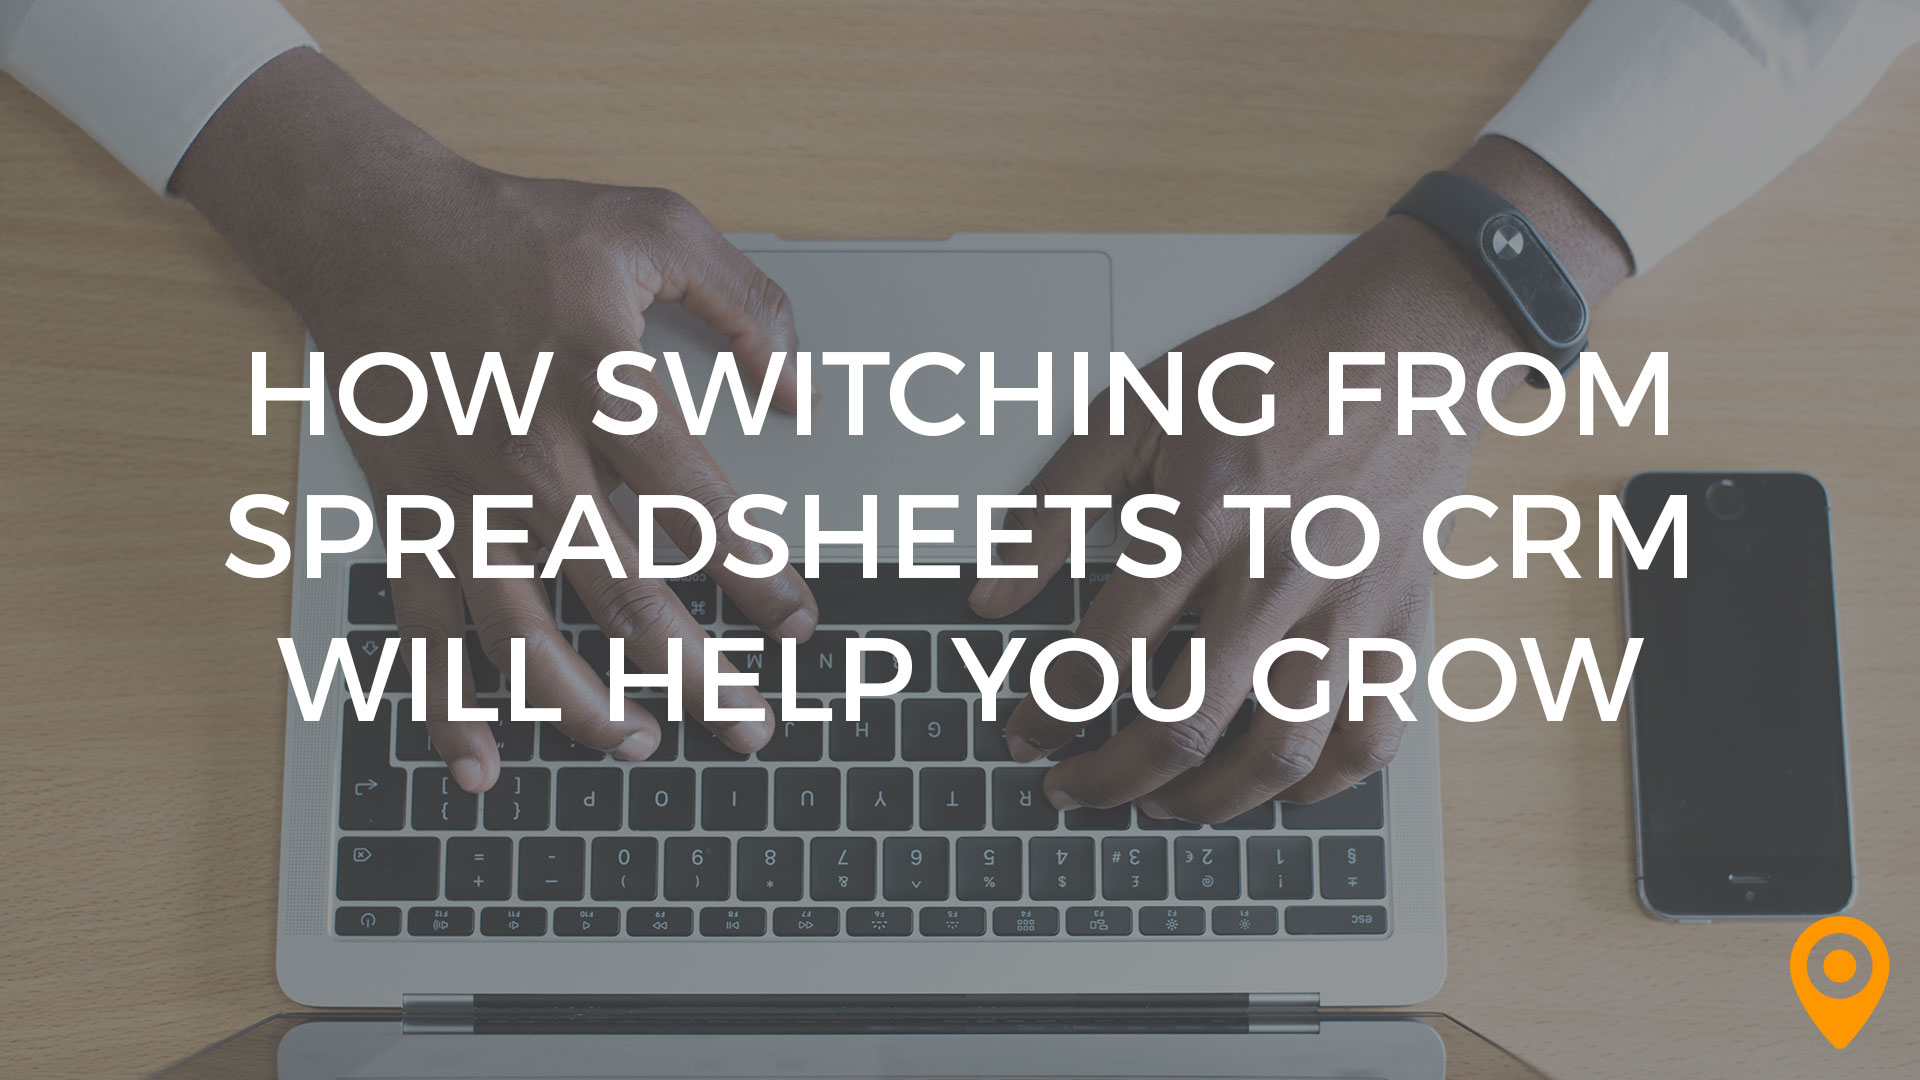 Hampshire Company Spreadsheet Intended For How Switching From Spreadsheets To Crm Will Help You Grow  Upcity